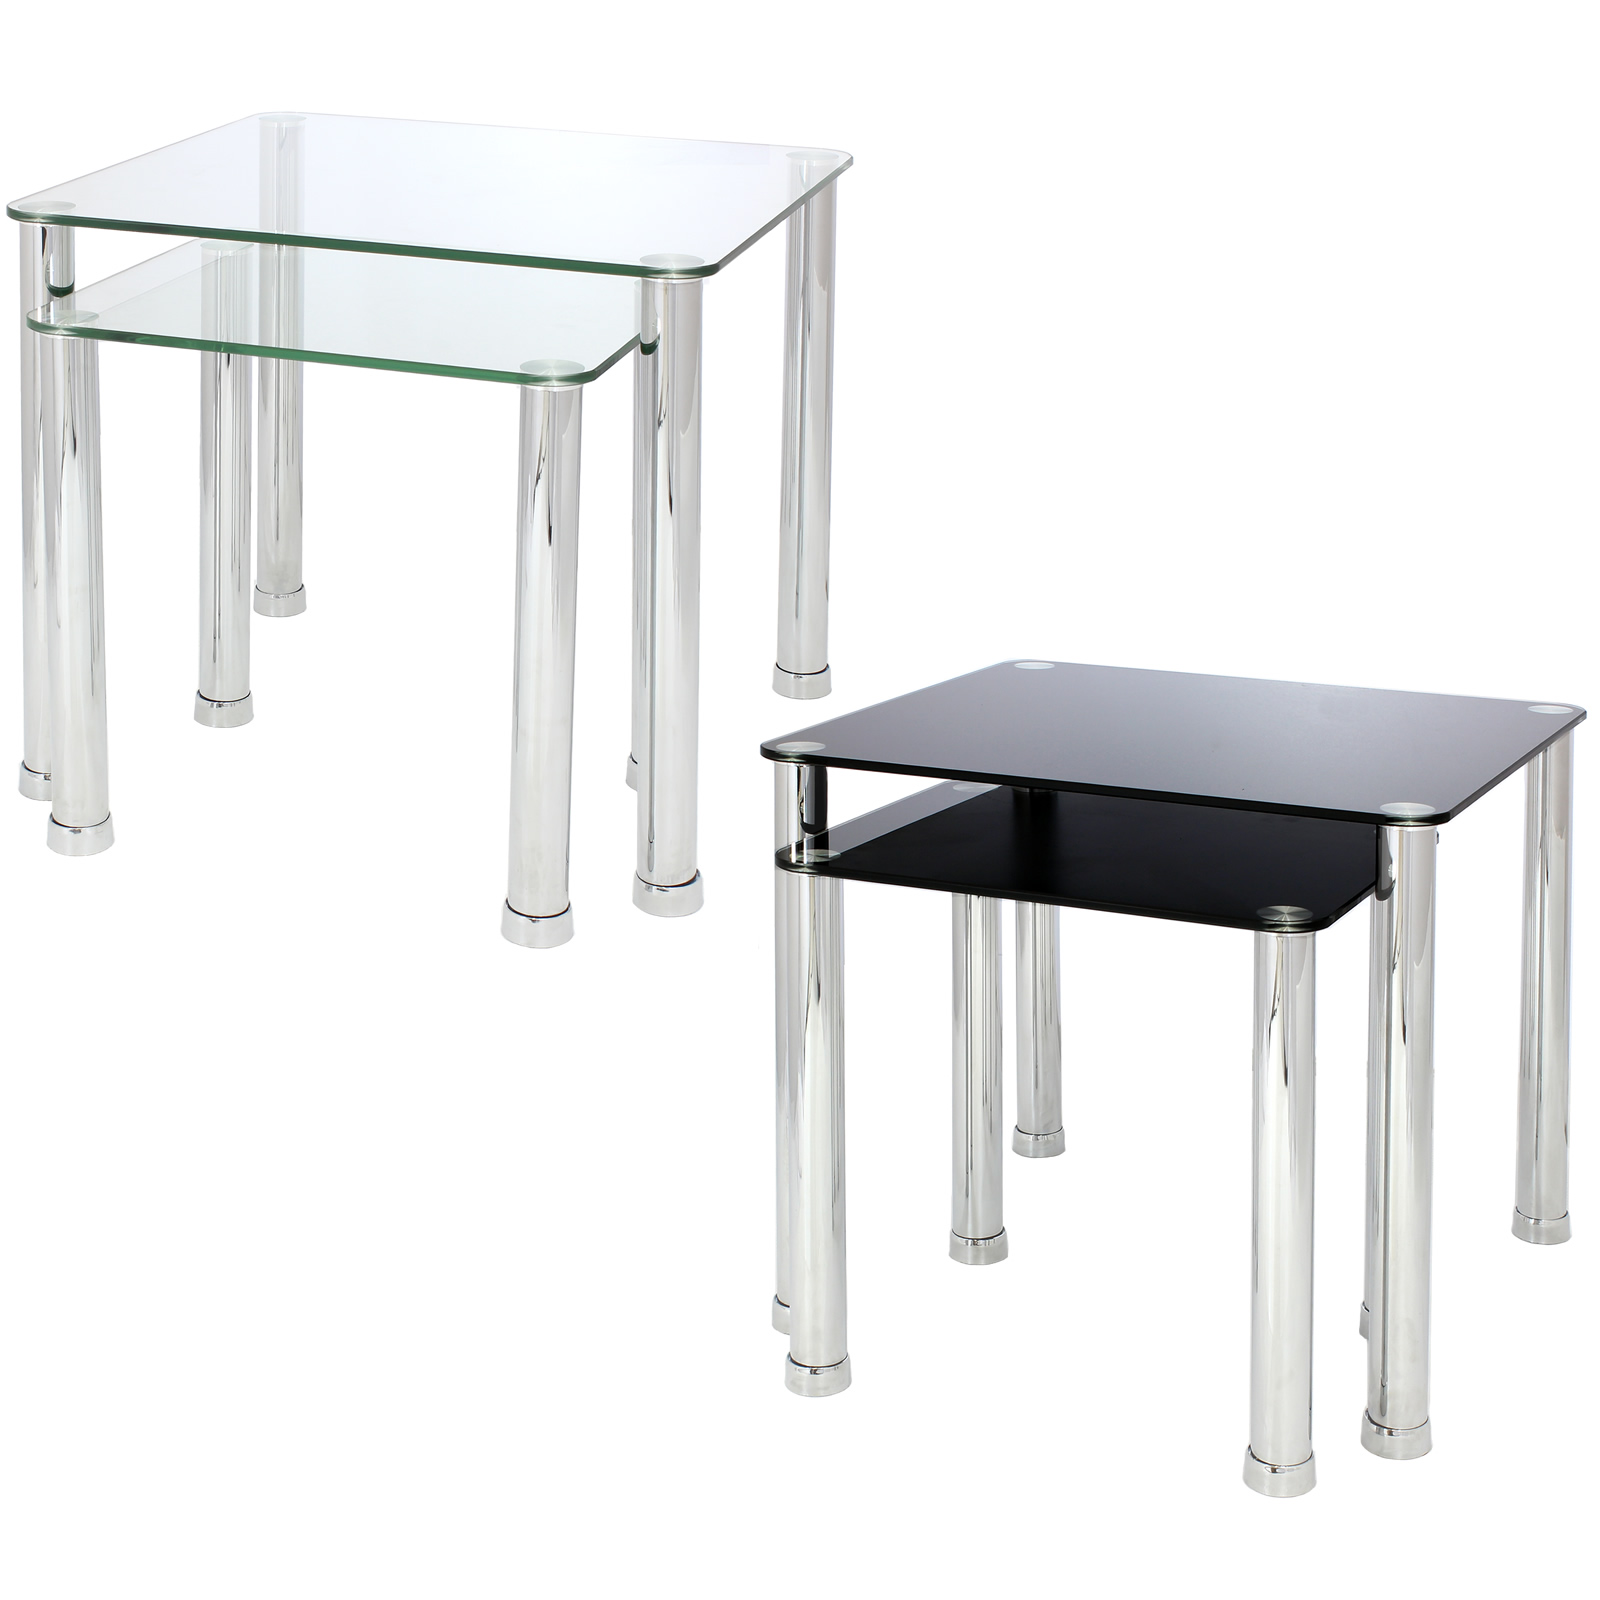 Glass Tables Living Room Nest Of 2 Glass Chrome Tables Home Lounge Living Room Set